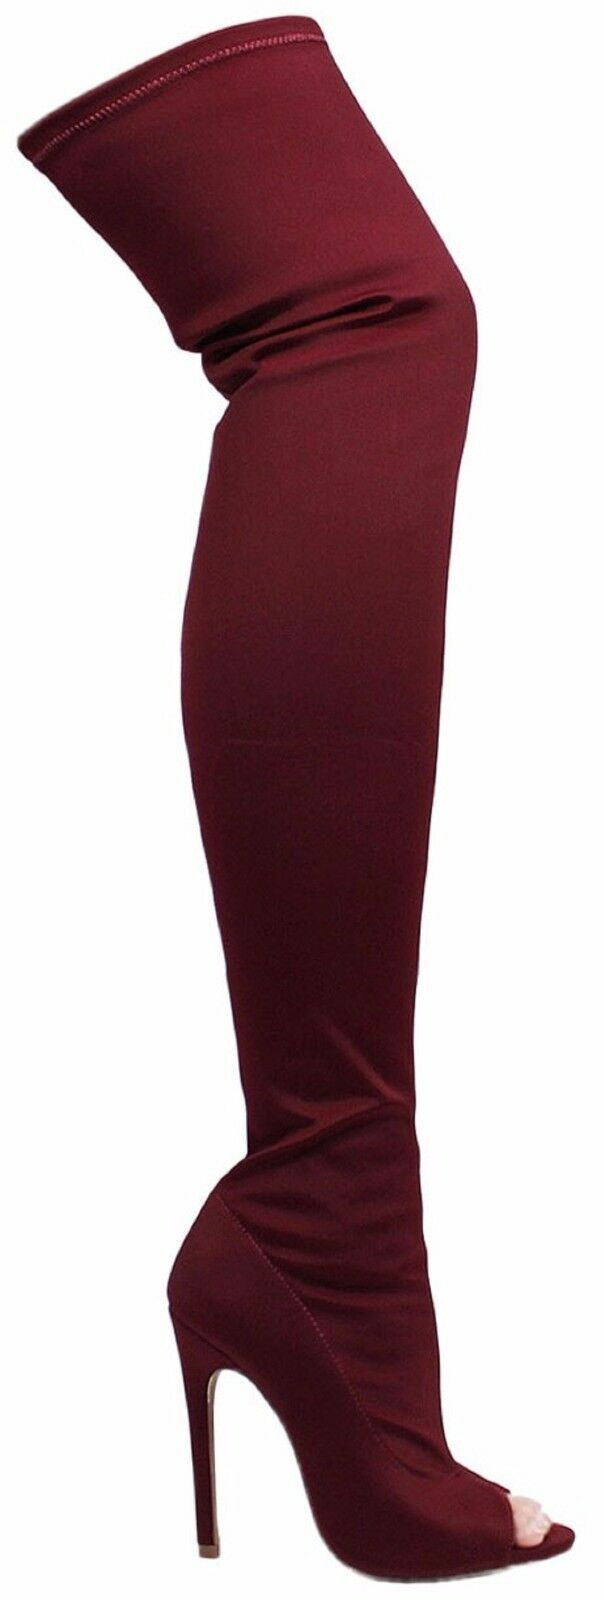 Connely-8A Thigh High Over Knee Stretchy Lycra Open Toe Stiletto Heel Boot Wine